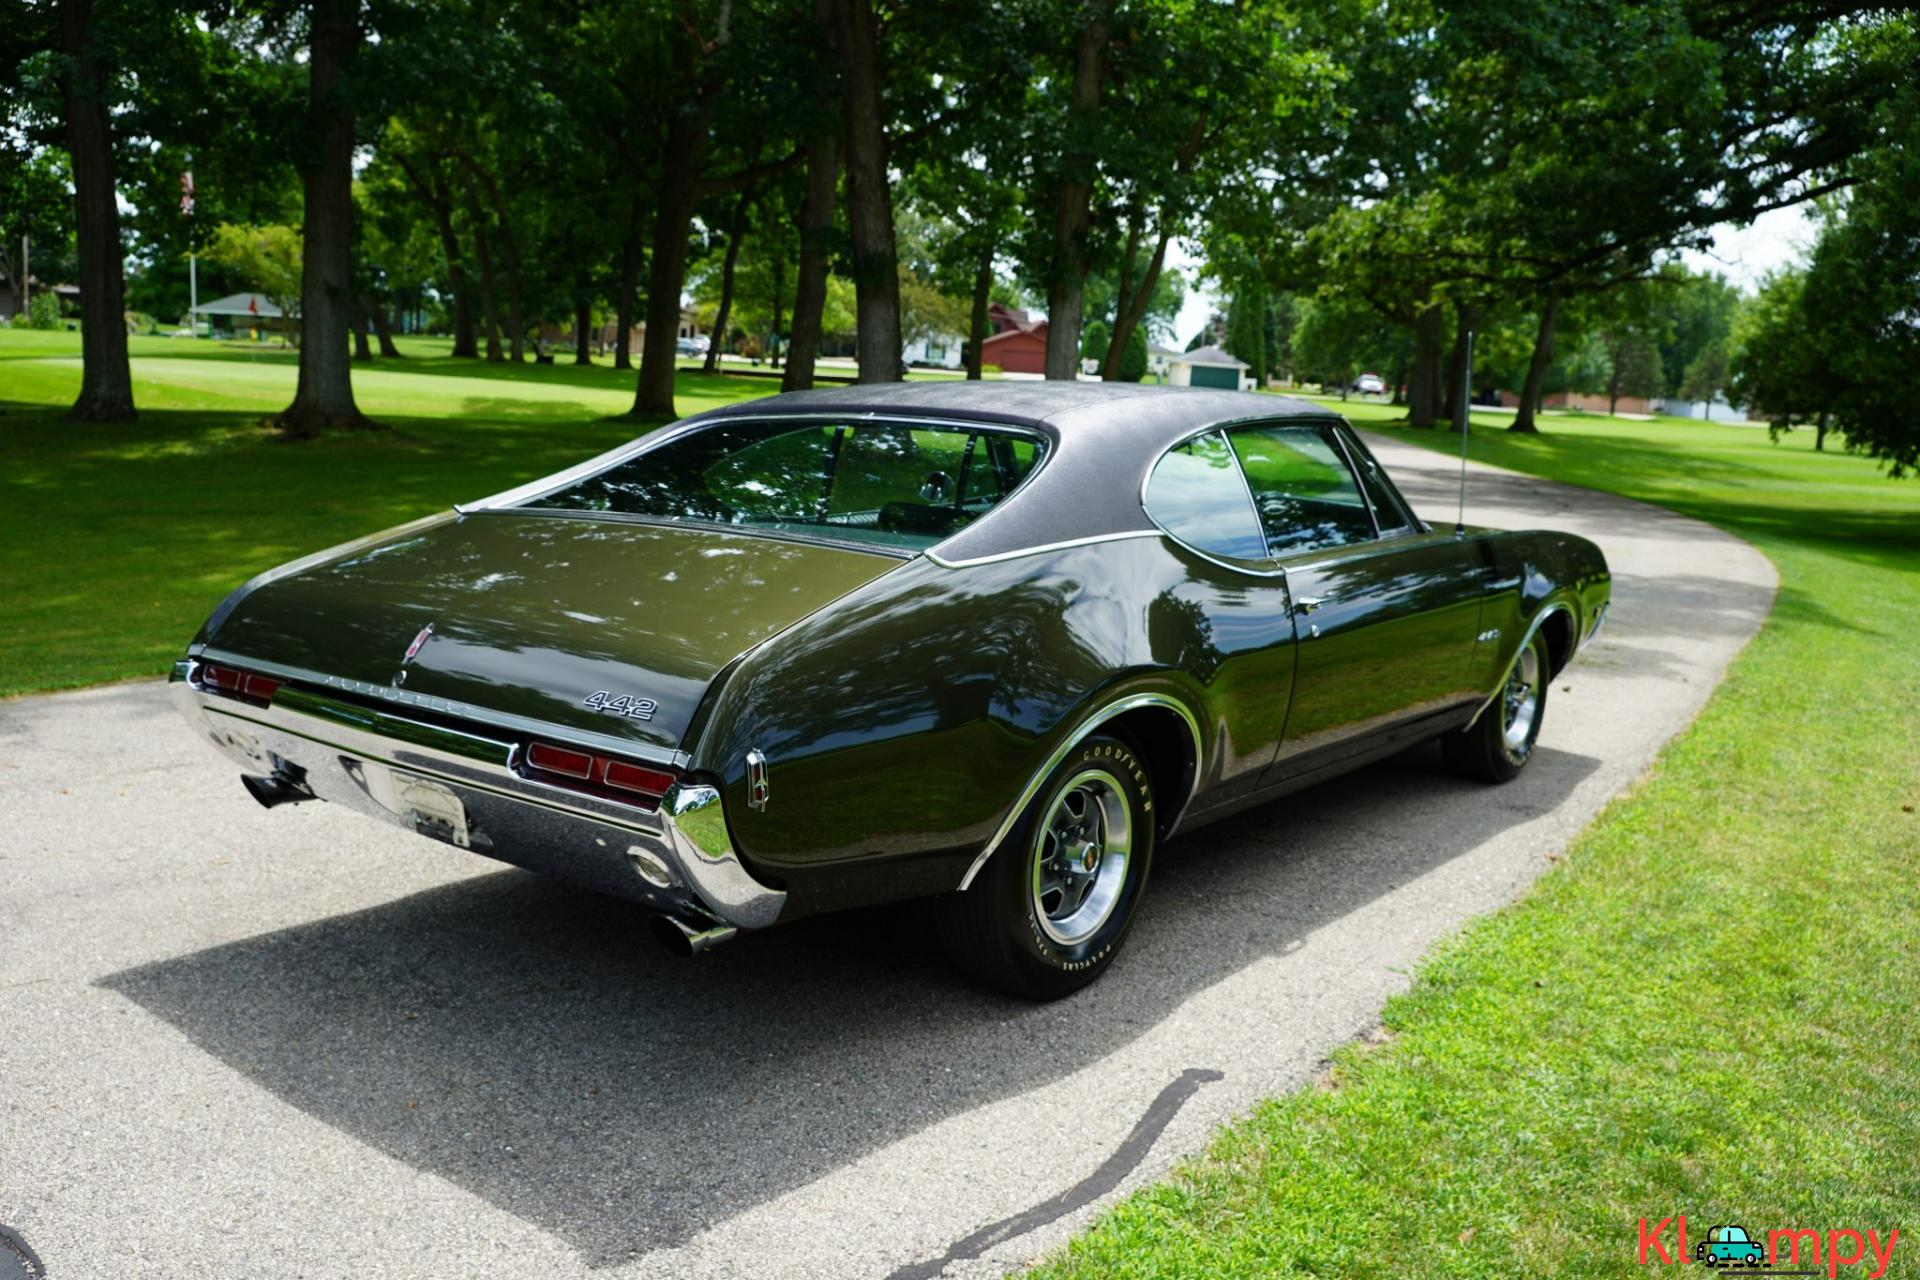 1968 Oldsmobile 442 Holiday Coupe Jade Gold - 5/28